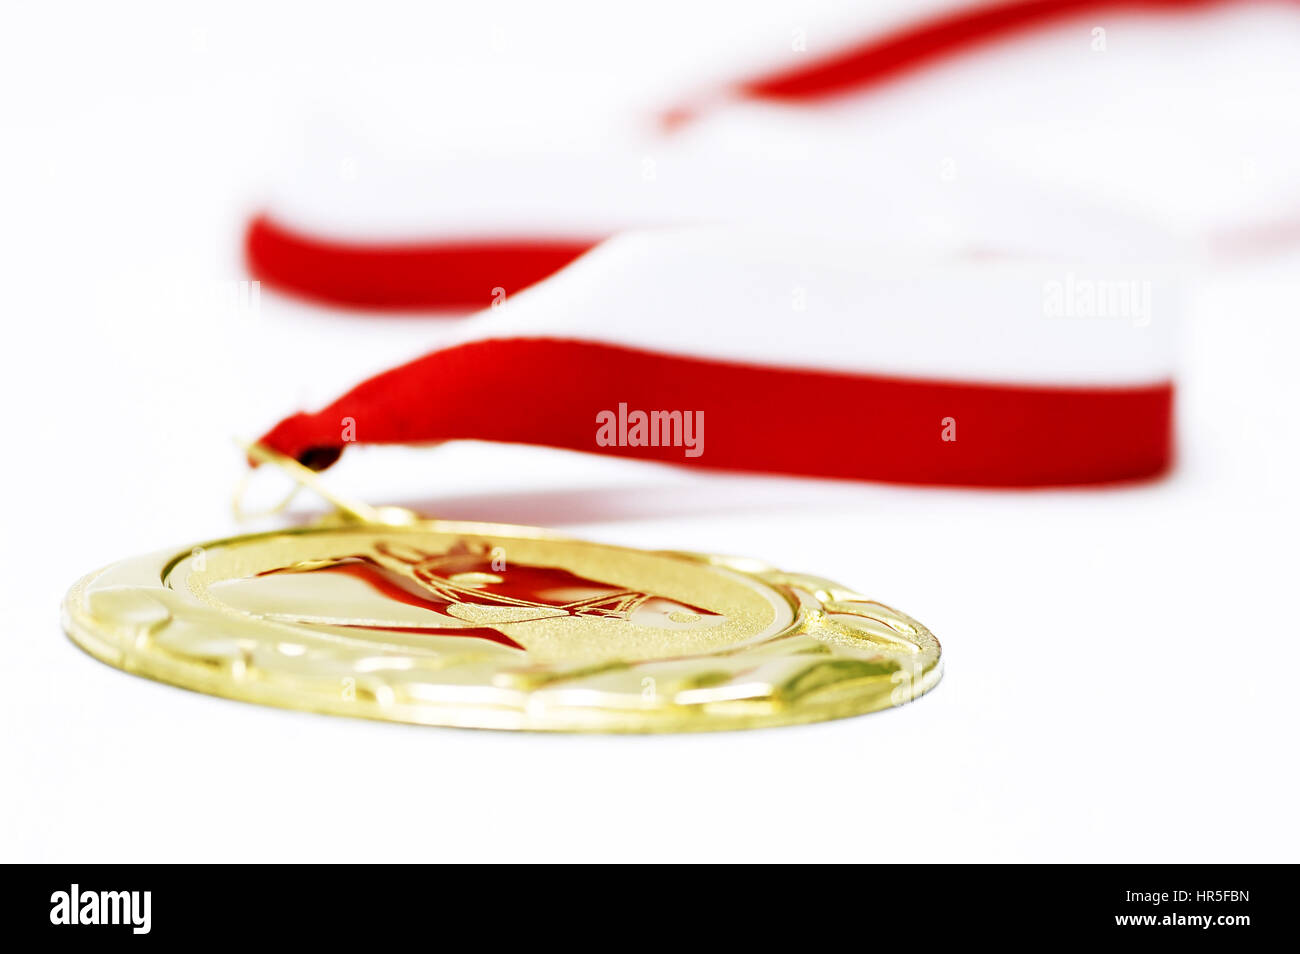 gold medal, as symbol of victory and success - Stock Image